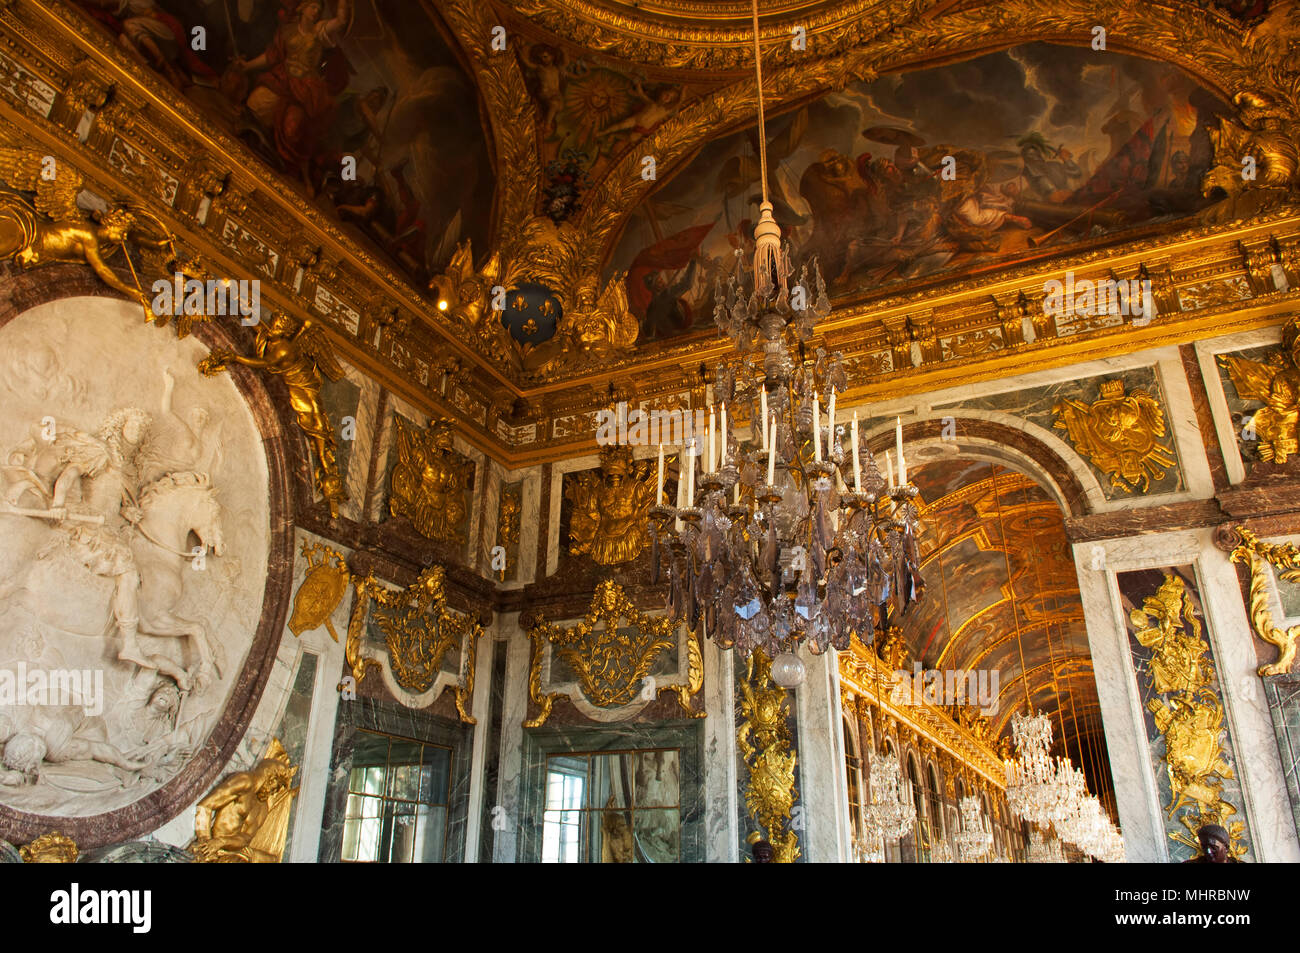 Salon De La Photo Grand Palais France Palais De Versailles Stock Photos And France Palais